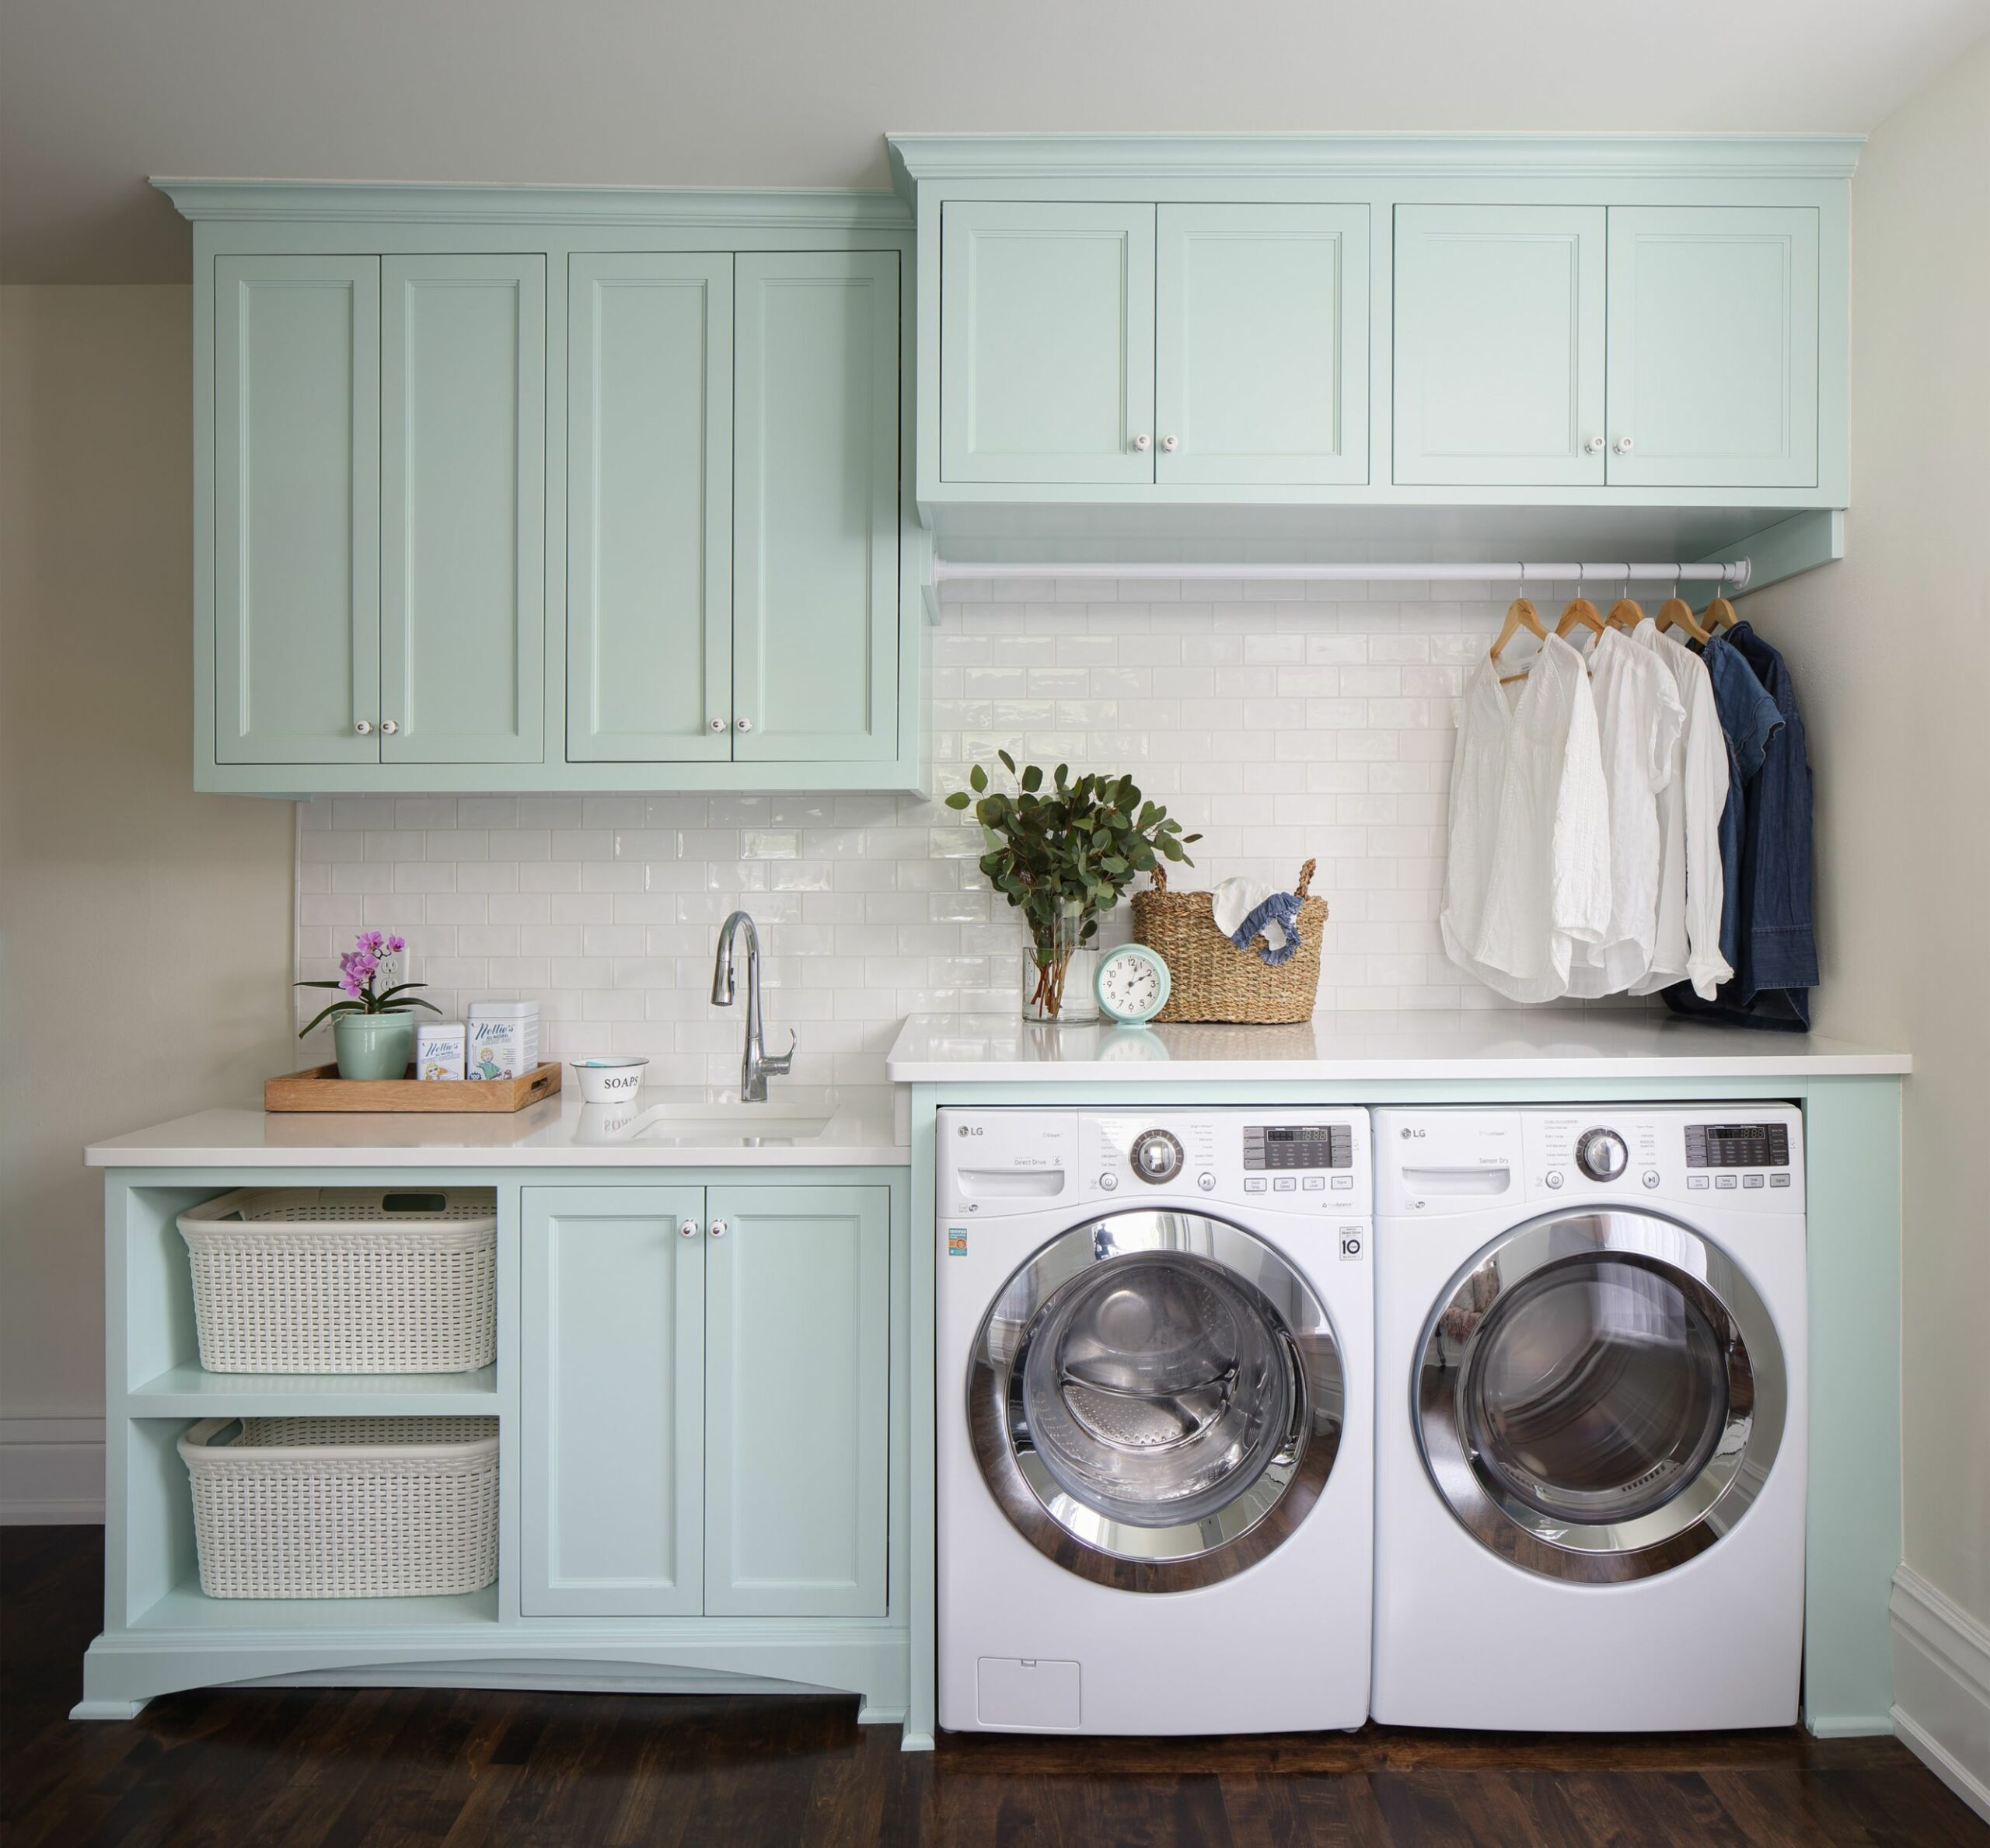 11 Beautiful Laundry Room Pictures & Ideas   Houzz